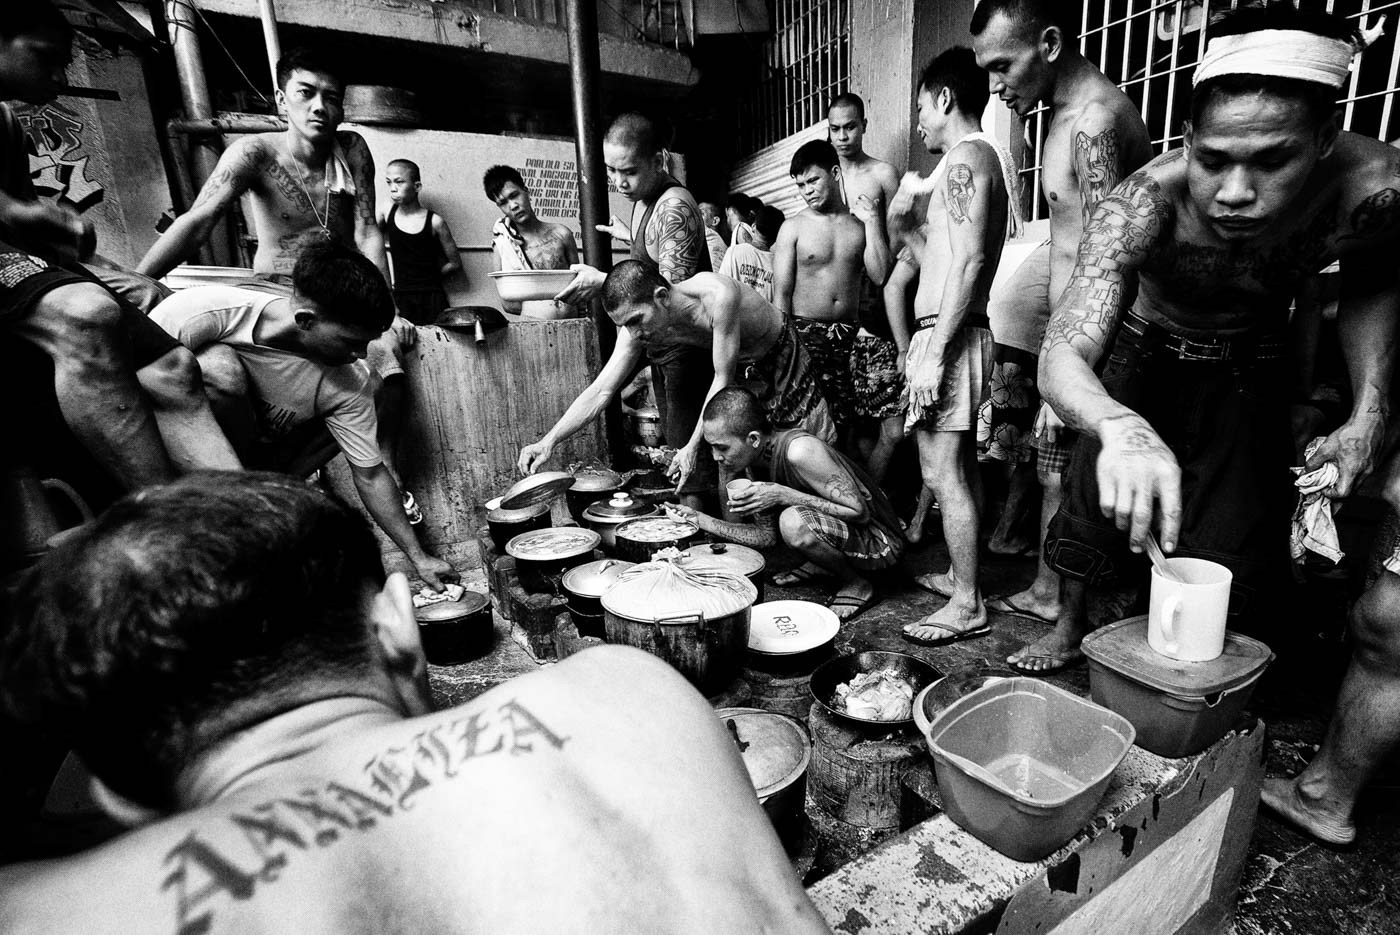 MEAL TIME. Inmates prepare to have their meal. Photo by Rick Rocamora